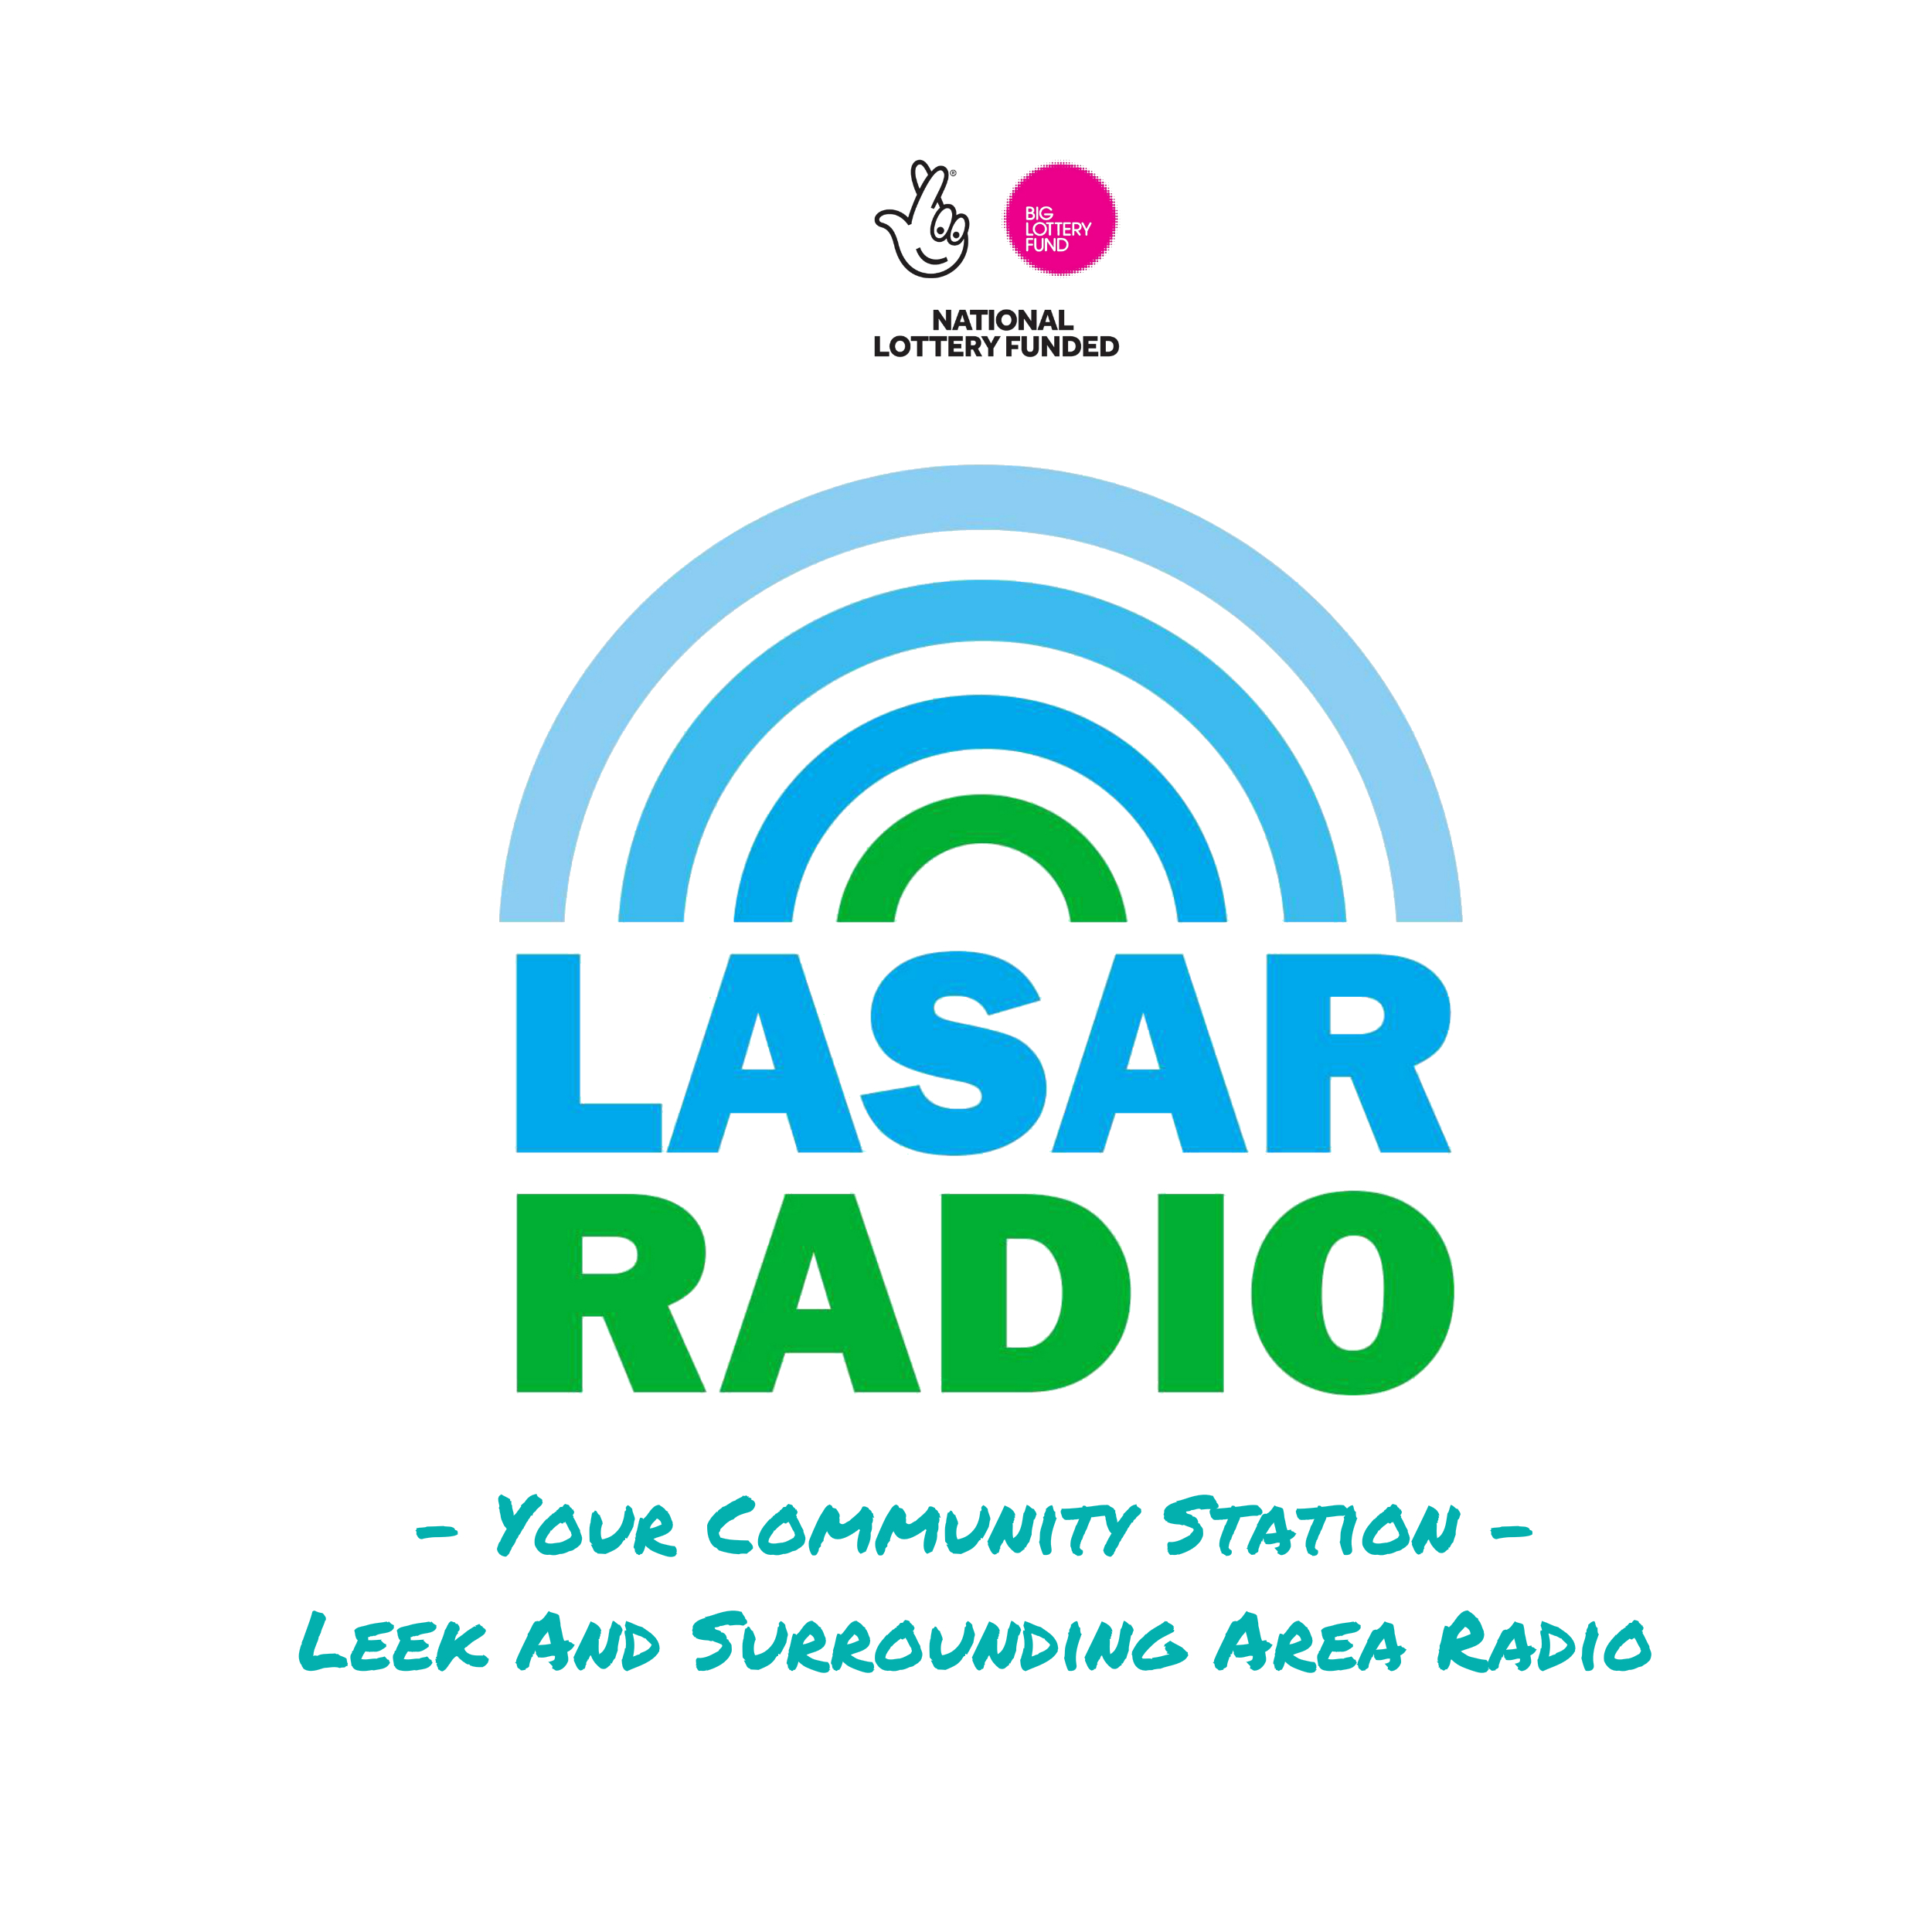 Lasar Radio (Leek And Surrounding Area Radio)